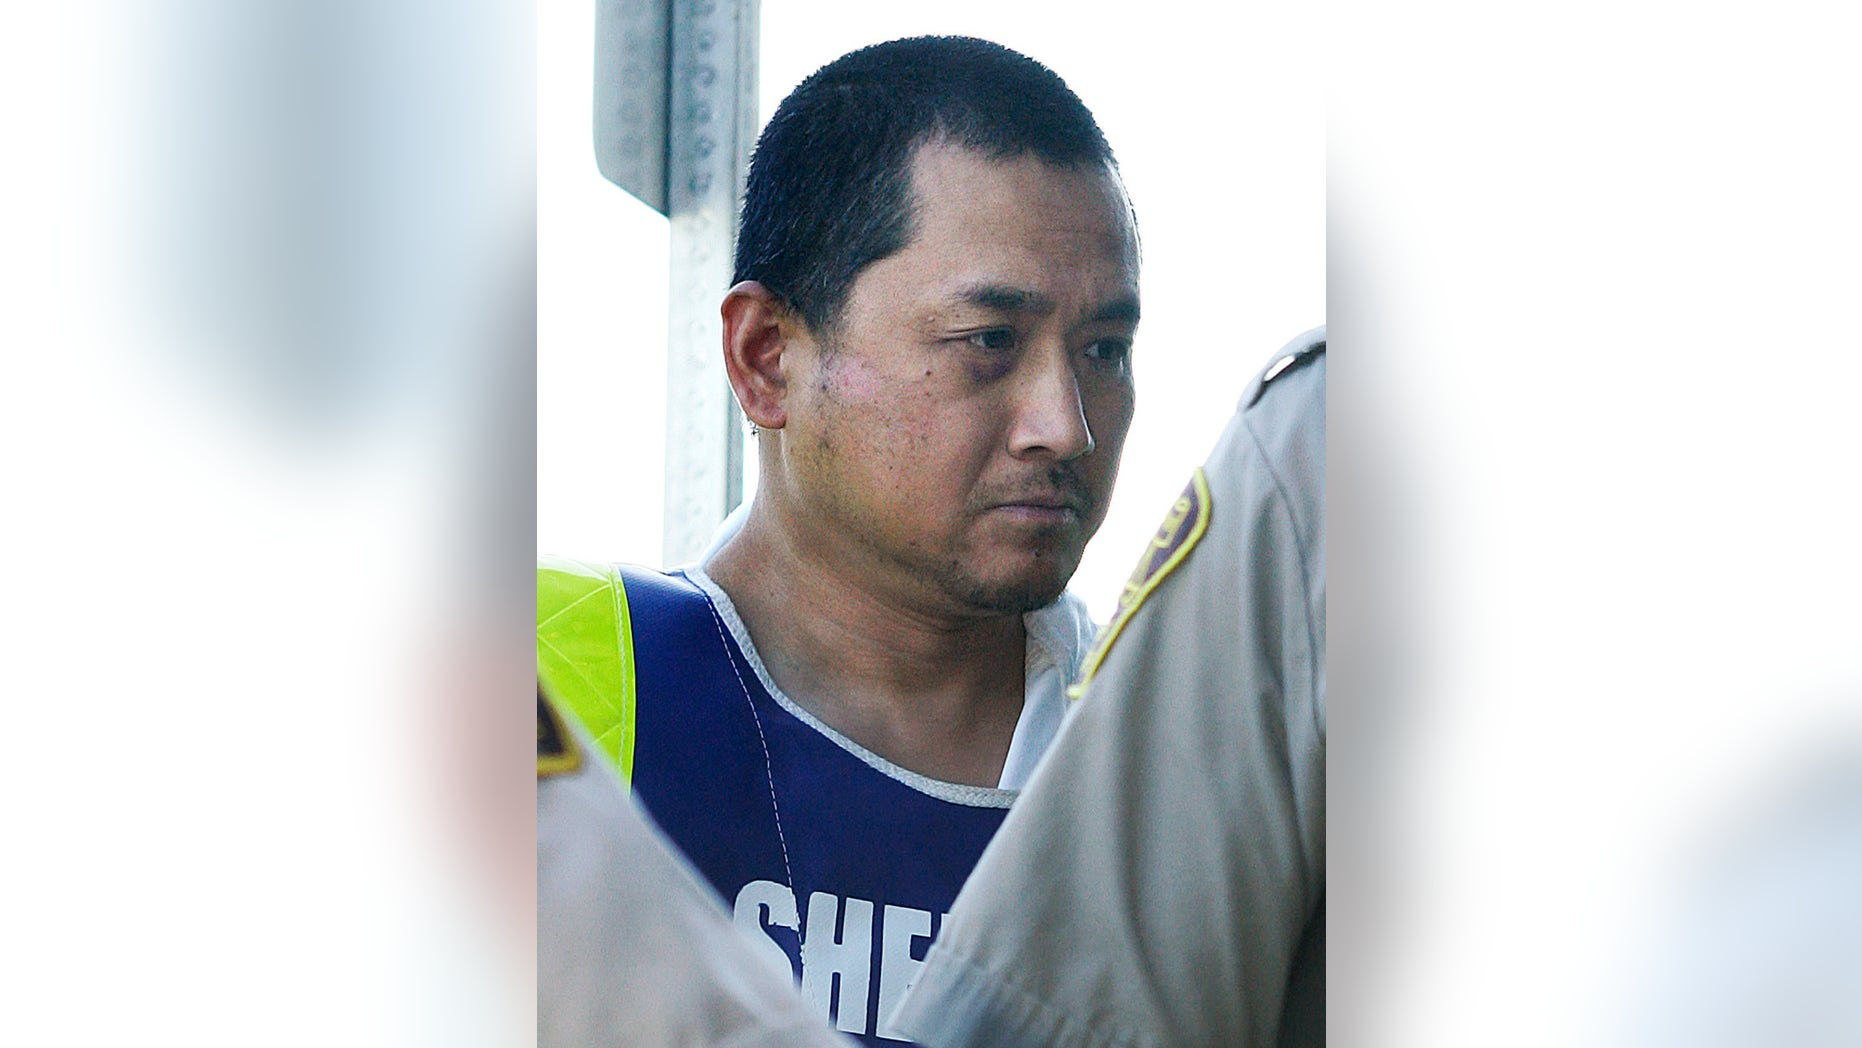 File- This Aug. 5, 2008, file photo shows Vince Li. Li, who was found not criminally responsible for beheading and cannibalizing a fellow passenger on a Greyhound bus has been granted his freedom. Manitoba's Criminal Code Review Board announced Friday, Feb. 10, 2017,  it has given Will Baker, formerly known as Vince Li, an absolute discharge, meaning he is longer subject to monitoring.  (John Woods/The Canadian Press via AP, File)